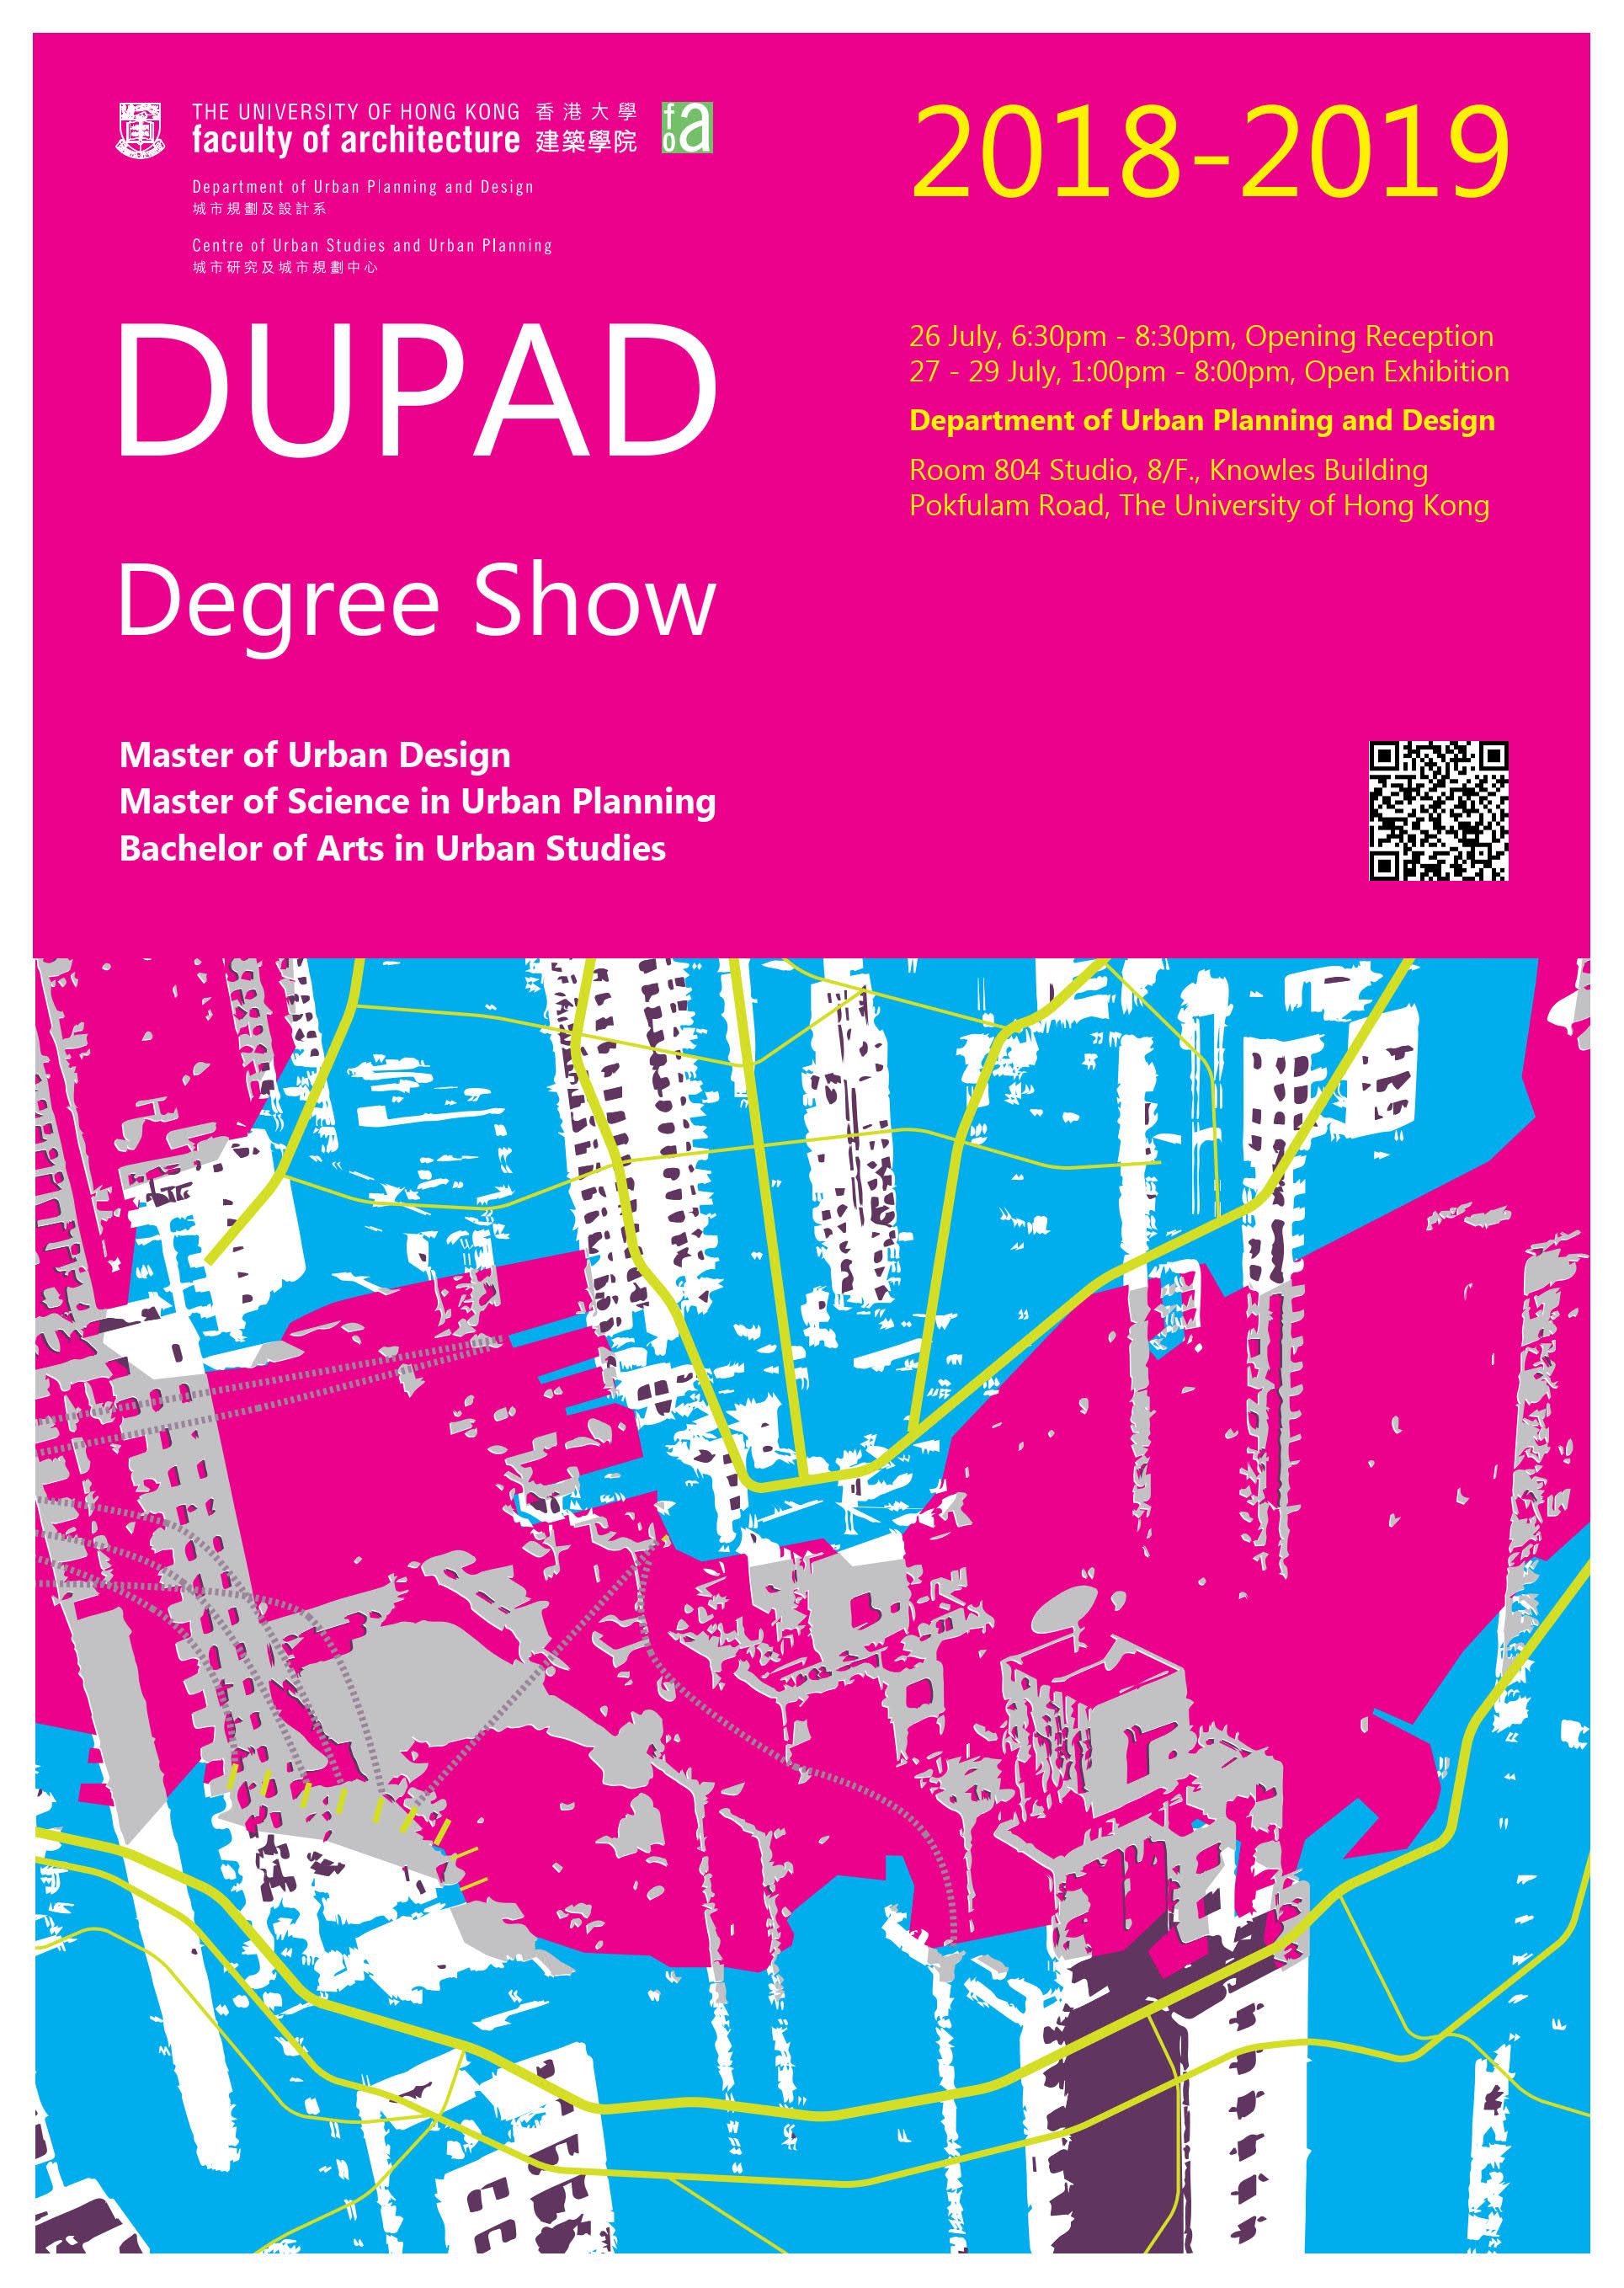 2018-2019 DUPAD Degree Show